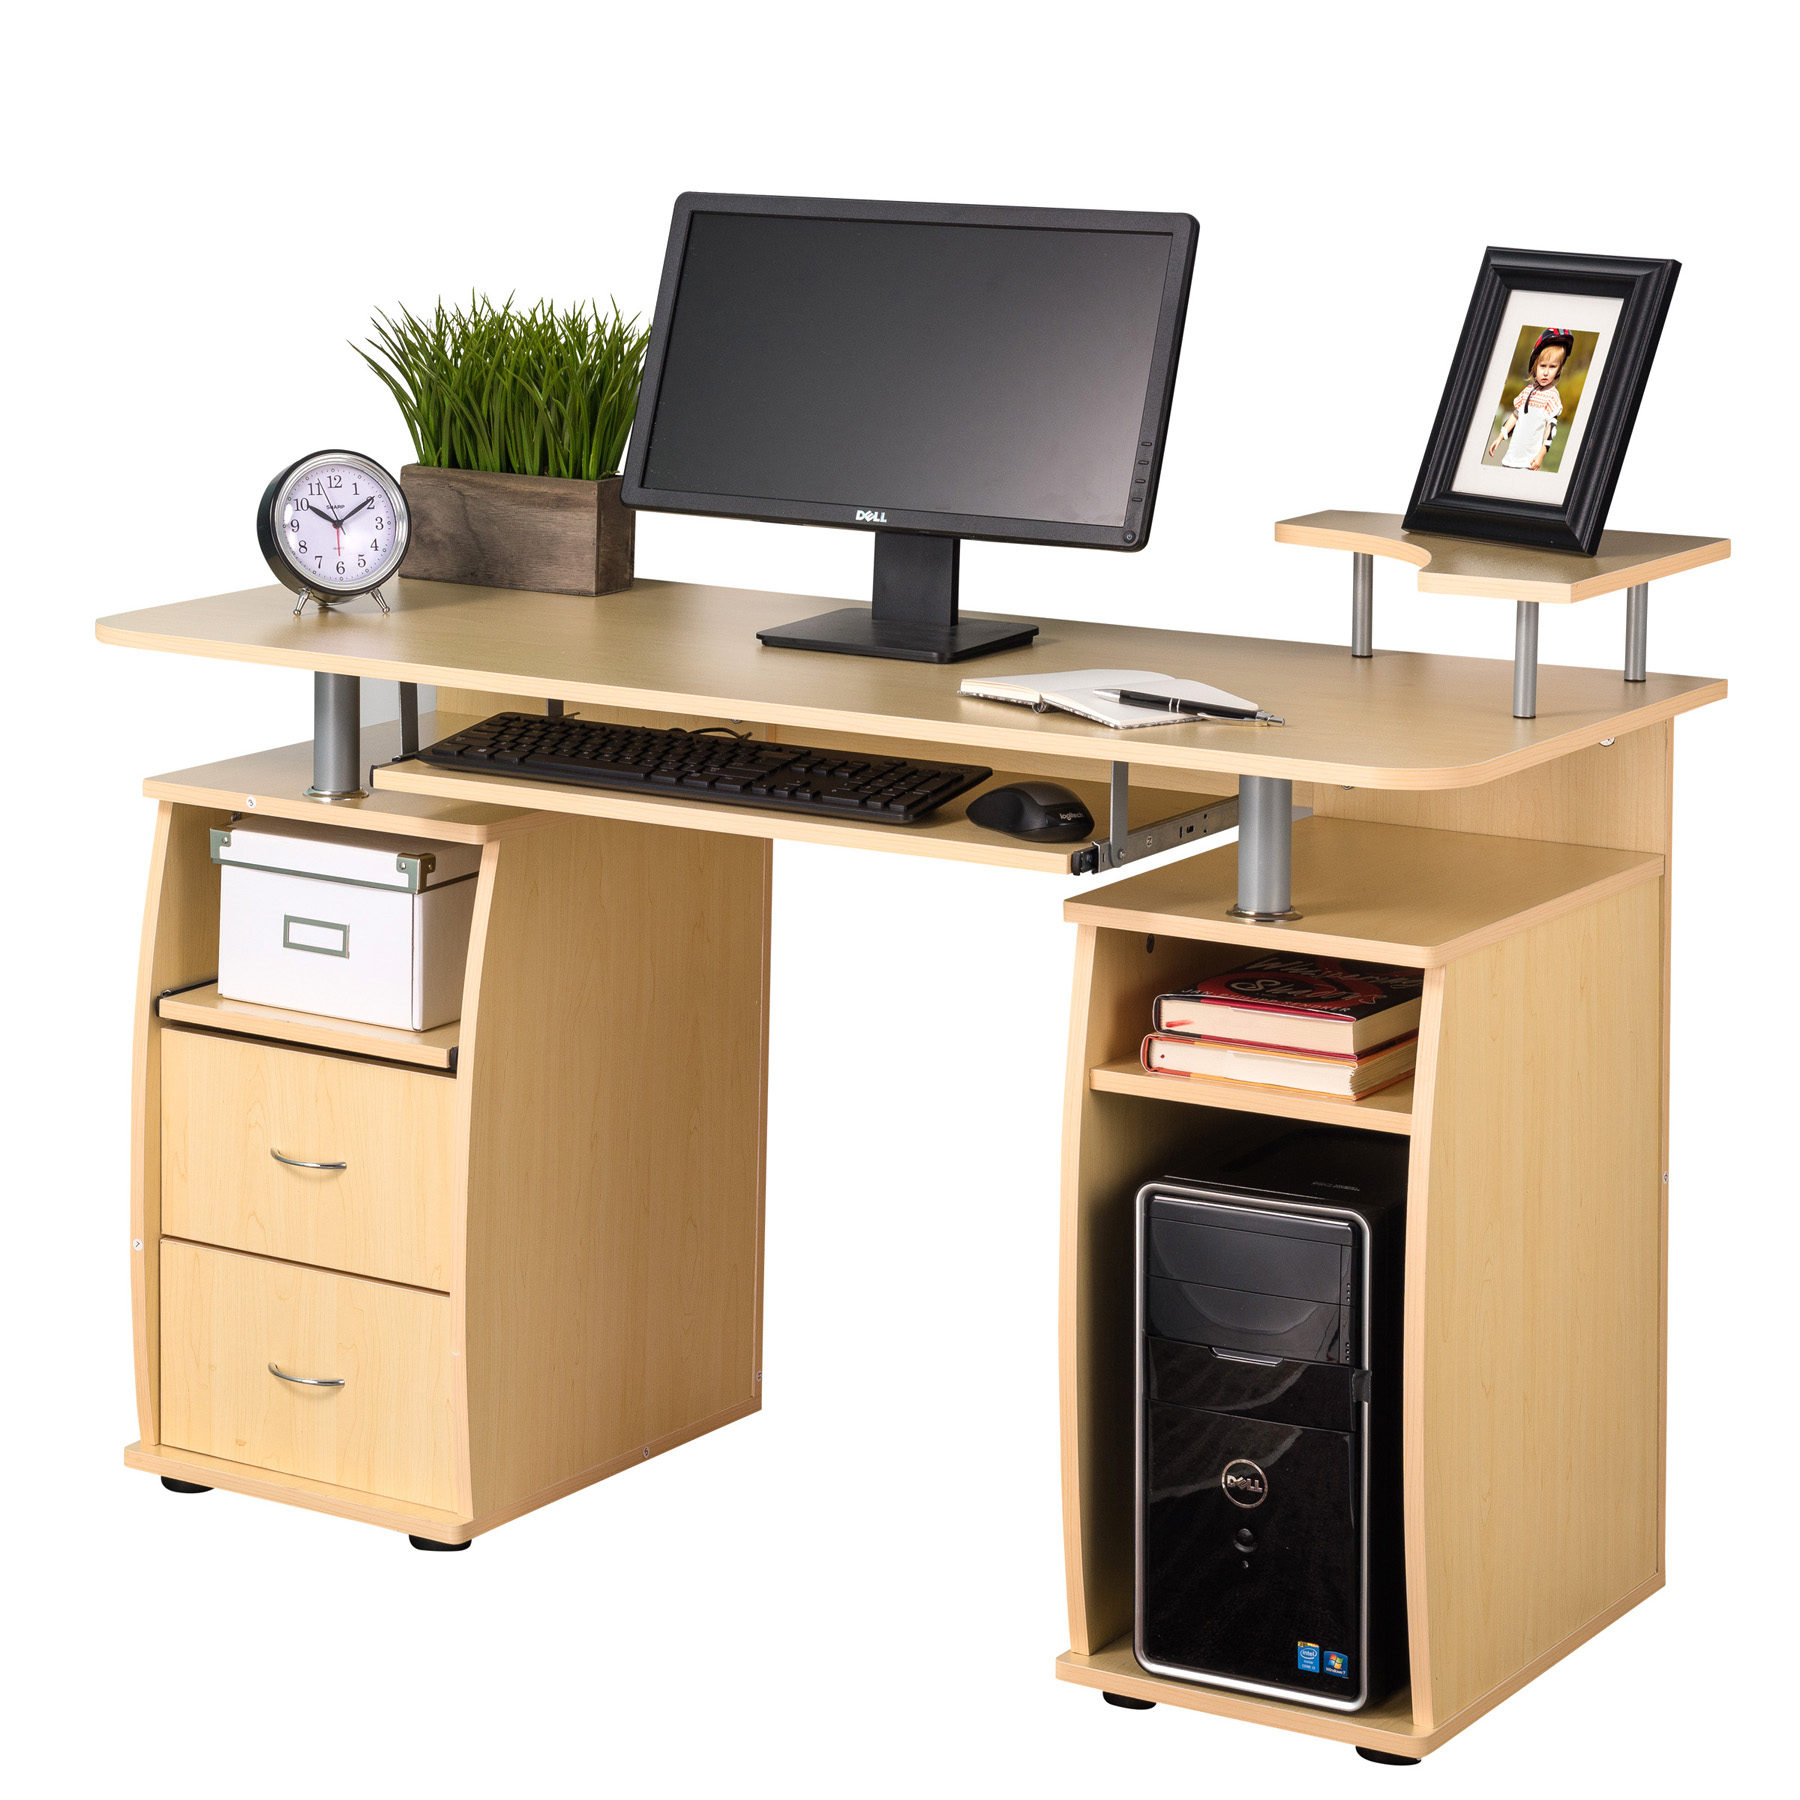 Perfect Fineboard Home Office Computer Desk, Yellow Teak   Walmart.com